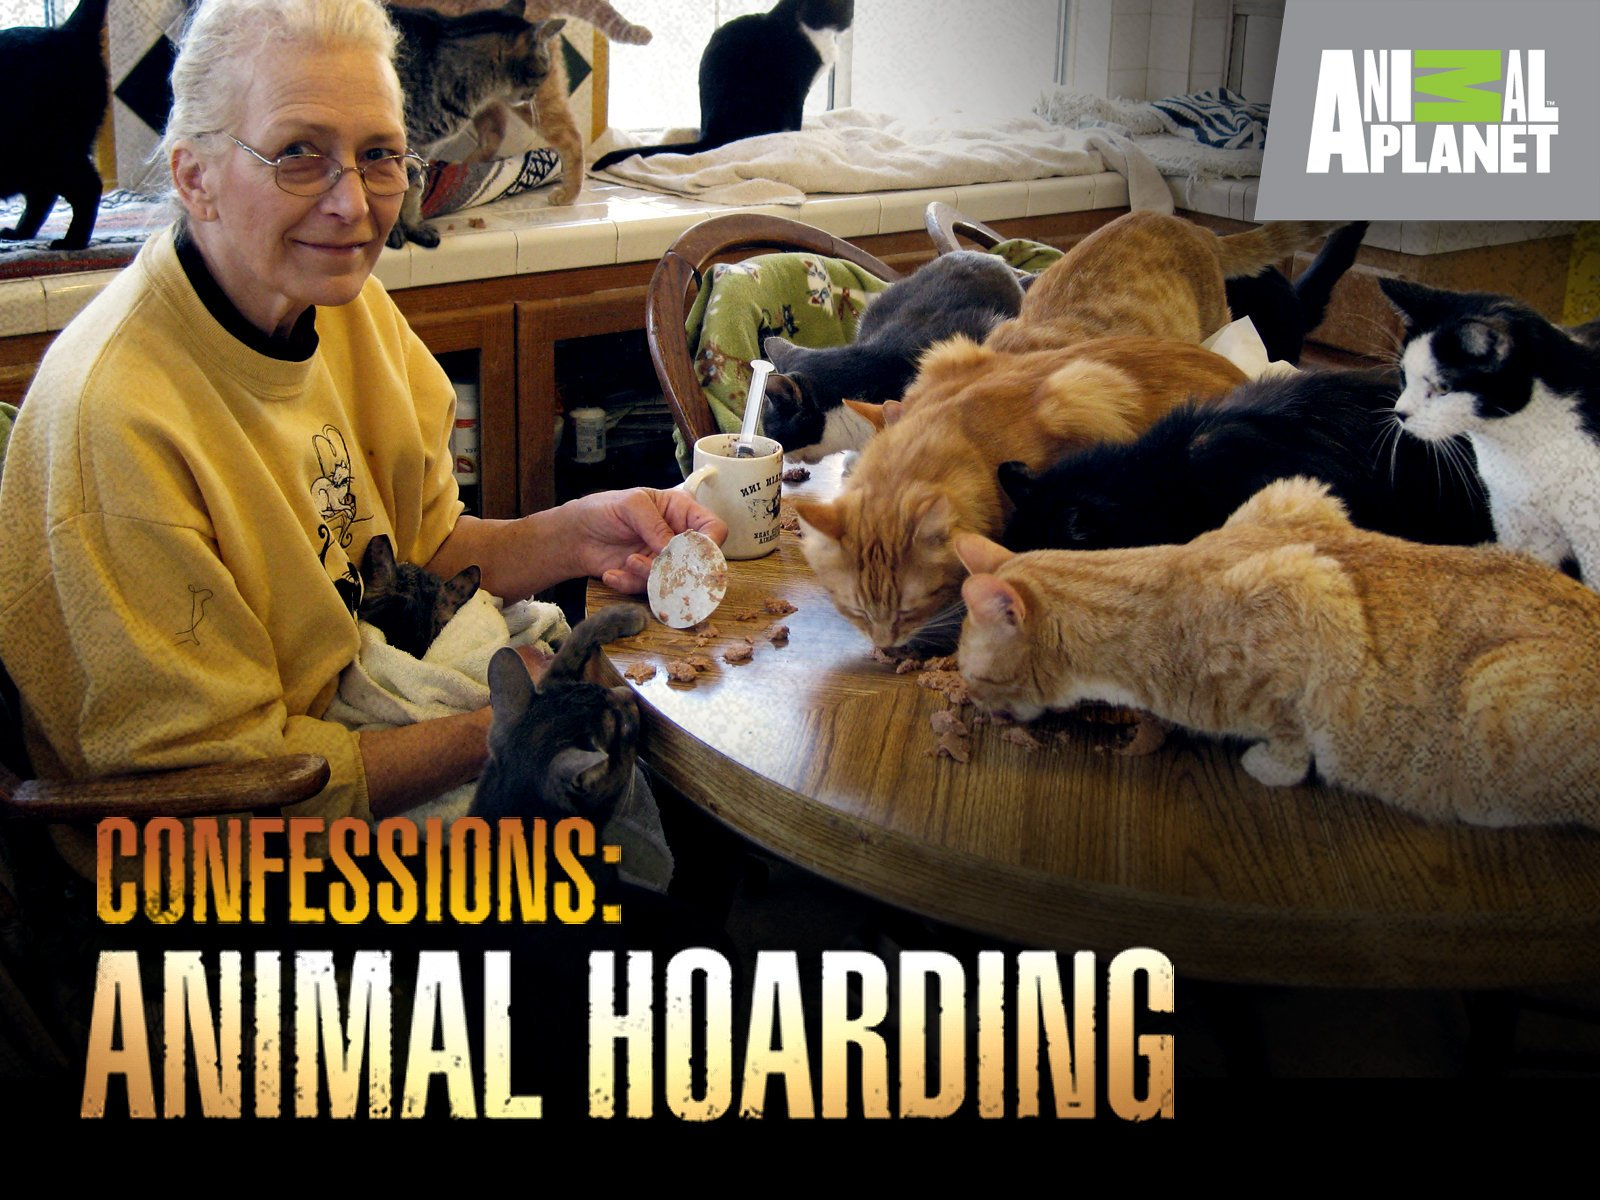 watch americas animal hoarder horror at the zoo